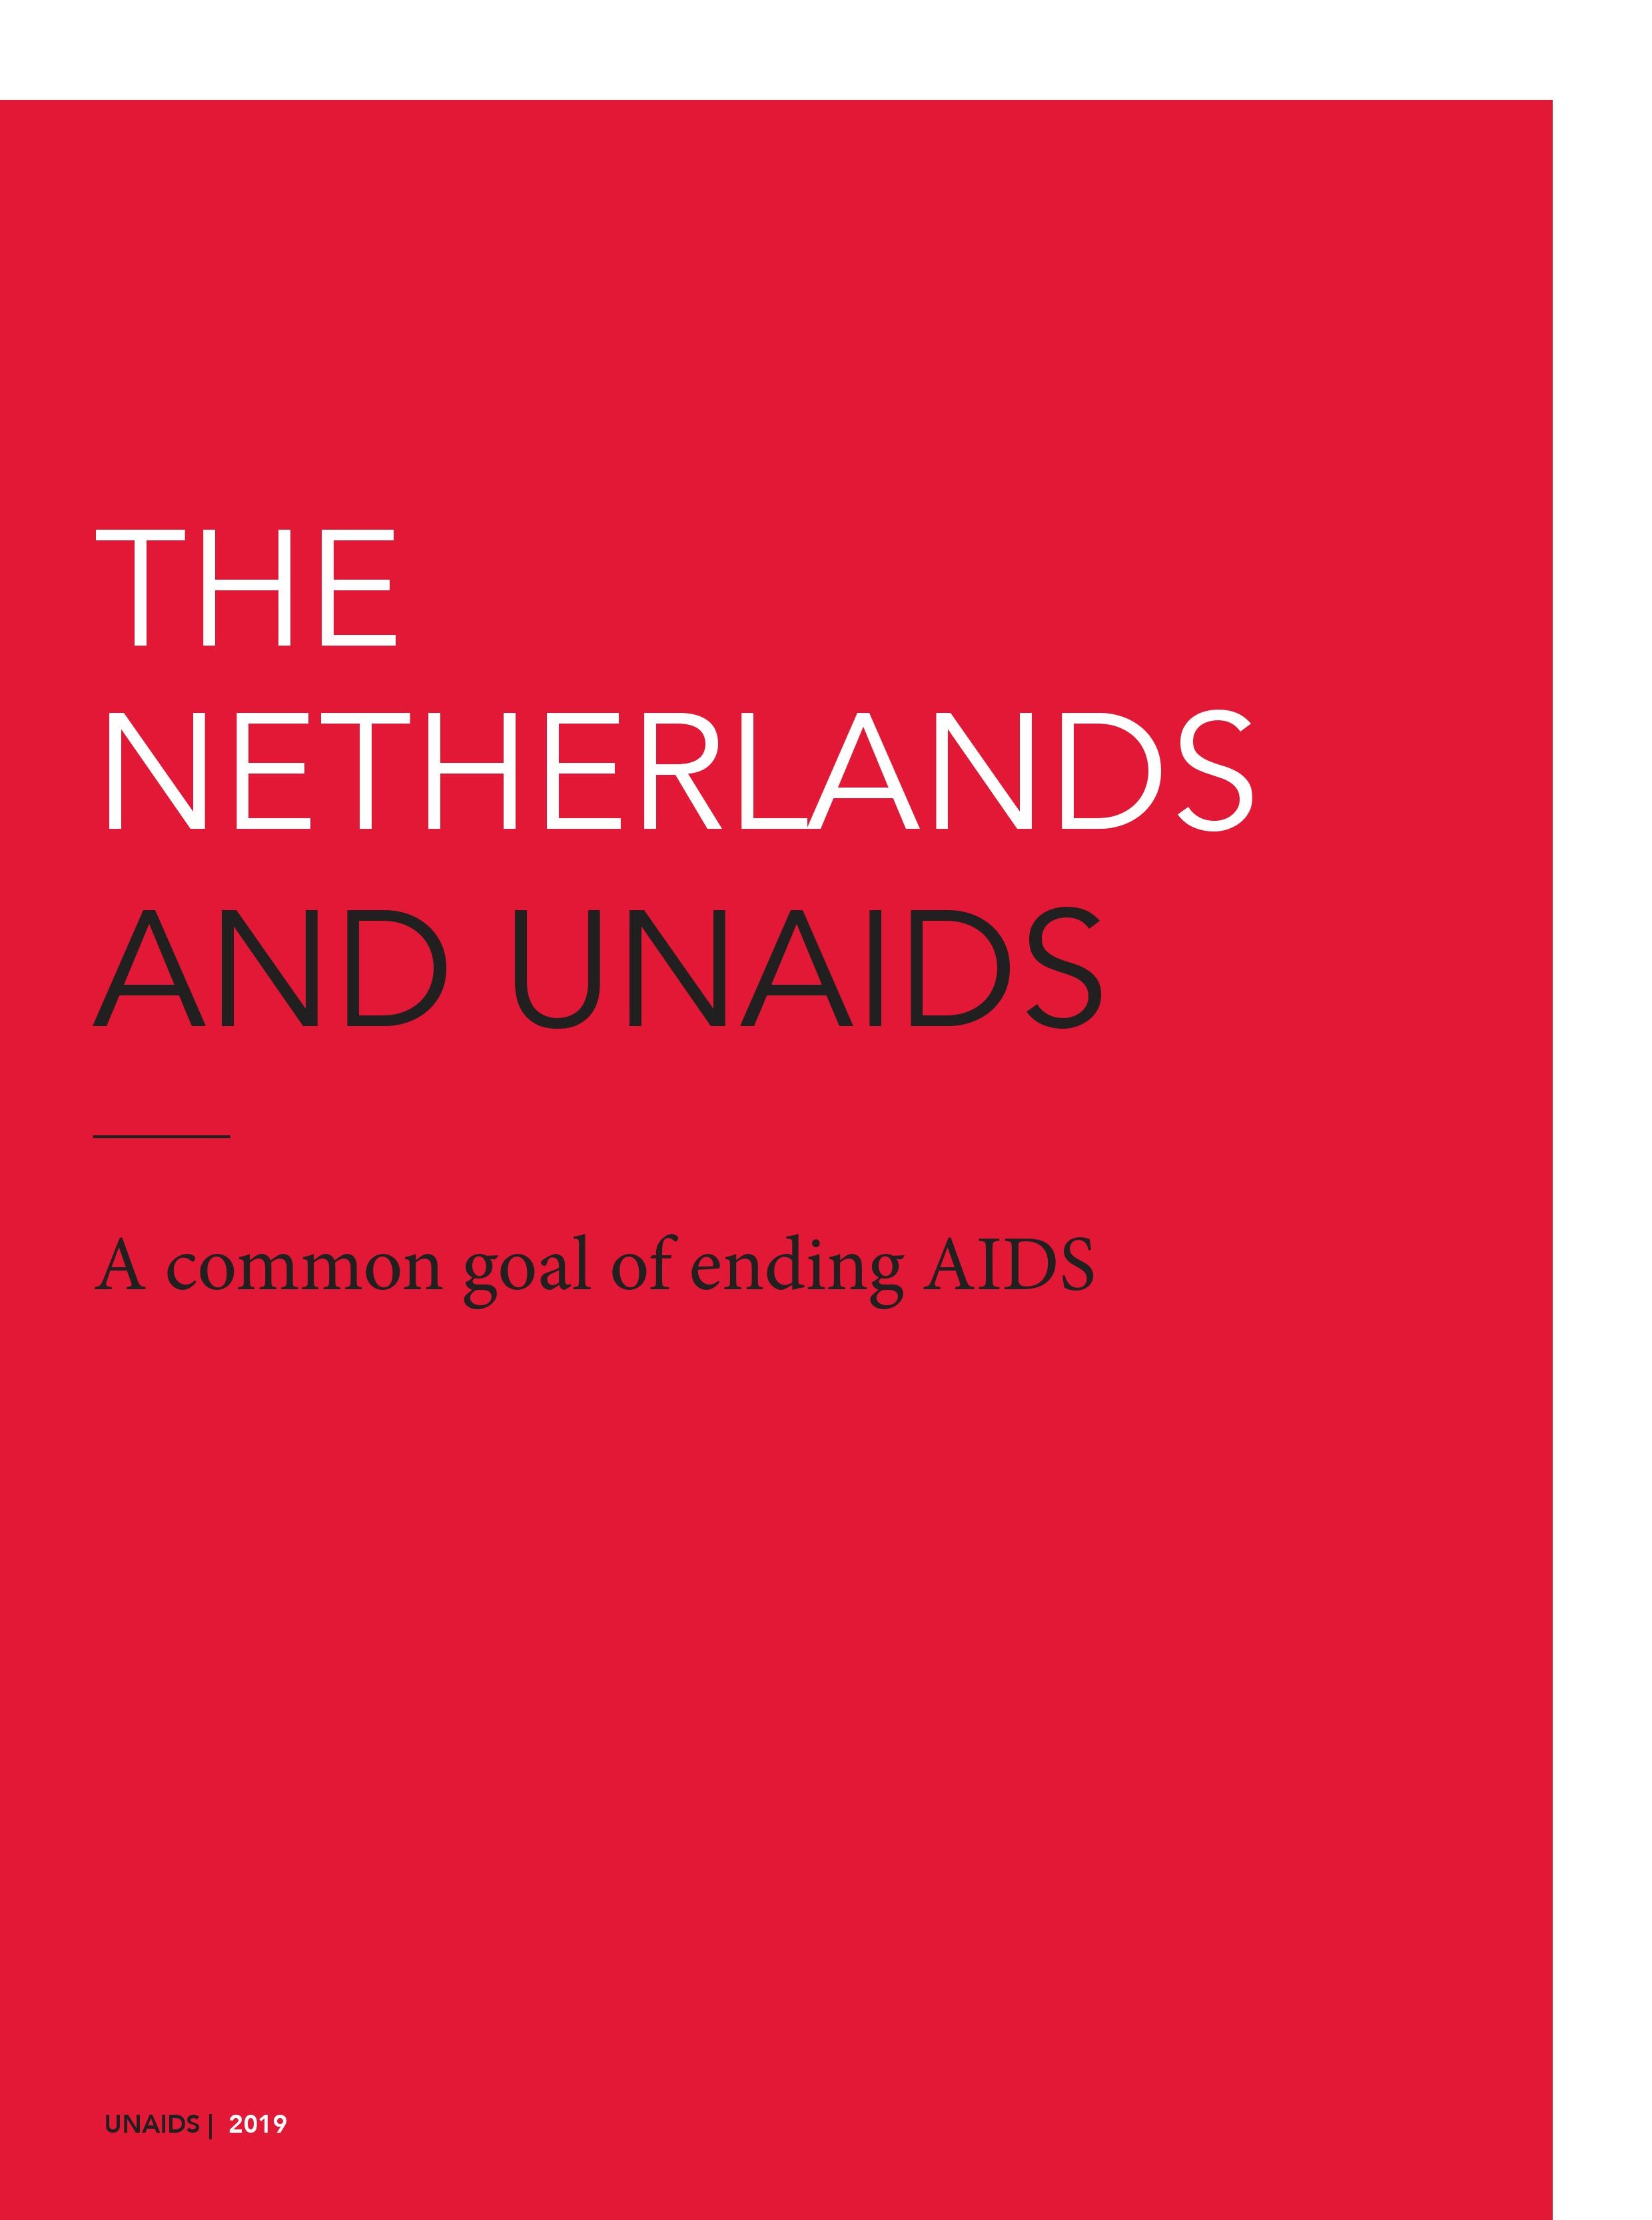 The Netherlands and UNAIDS